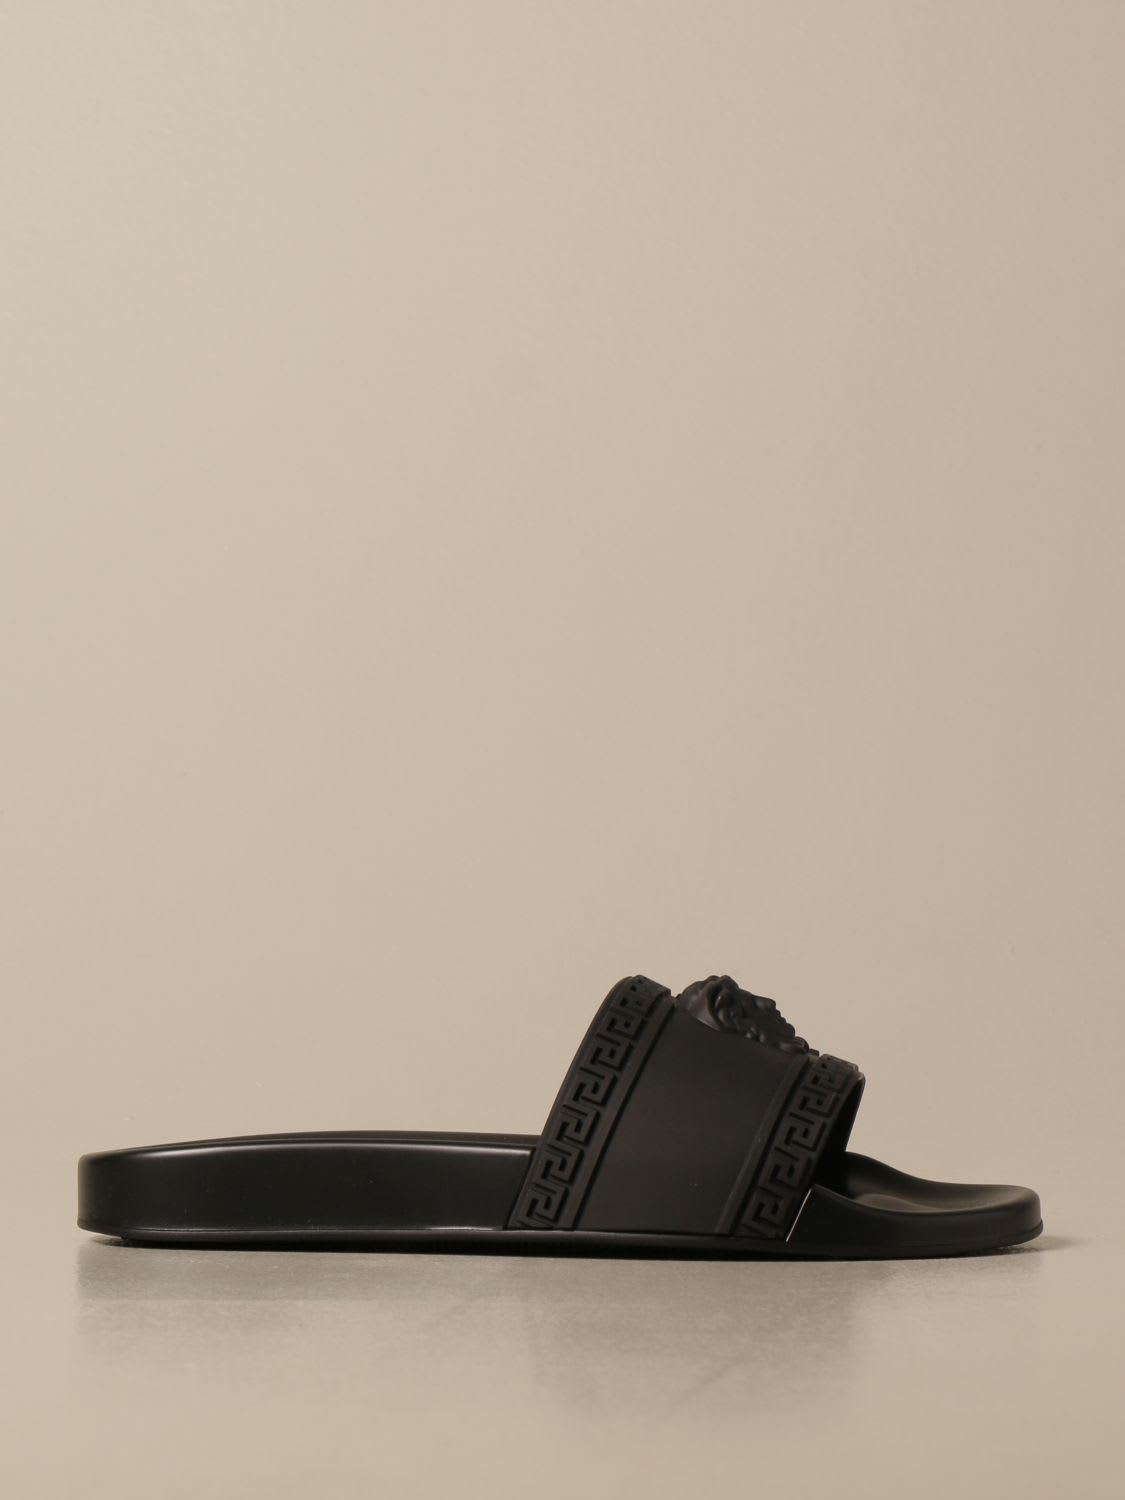 Versace Sandals Palazzo Versace Rubber Sandal With Medusa Head